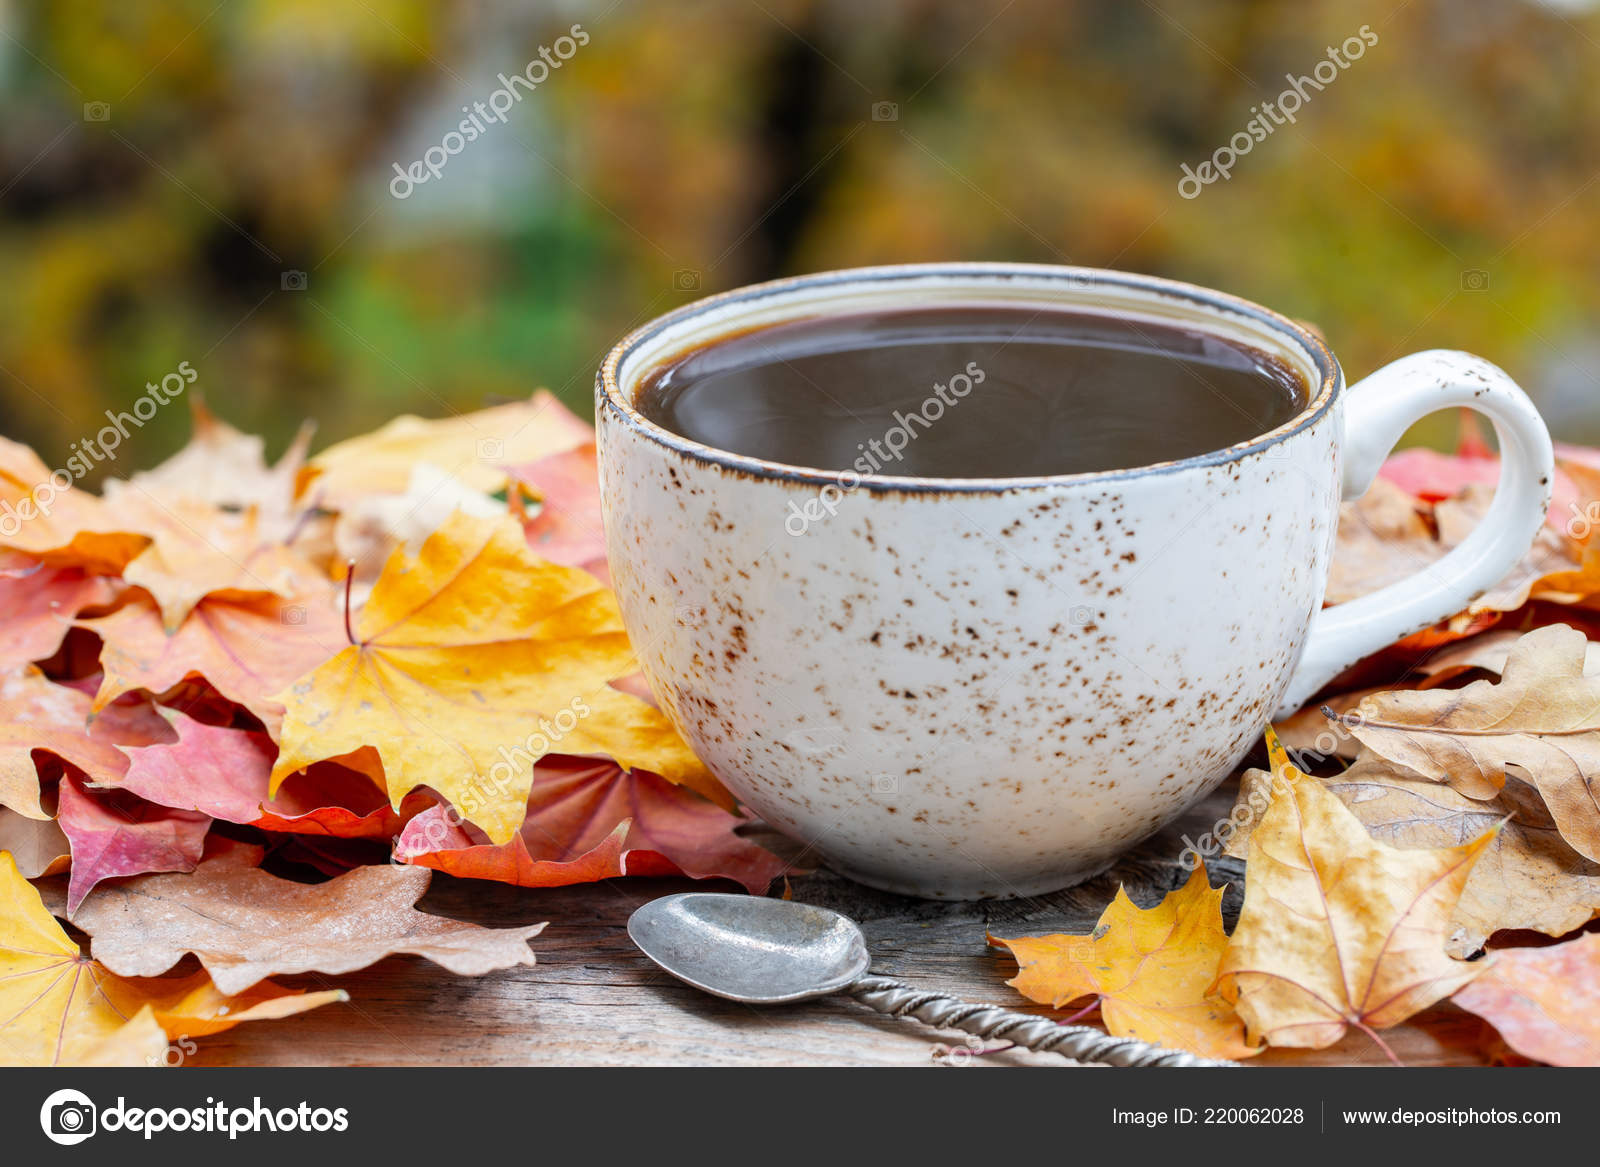 Autumn Fall Leaves Hot Steaming Cup Of Coffee On Wooden Table Background Seasonal Morning Coffee Sunday Relaxing And Still Life Concept With Copy Space For Text Stock Photo Image By C